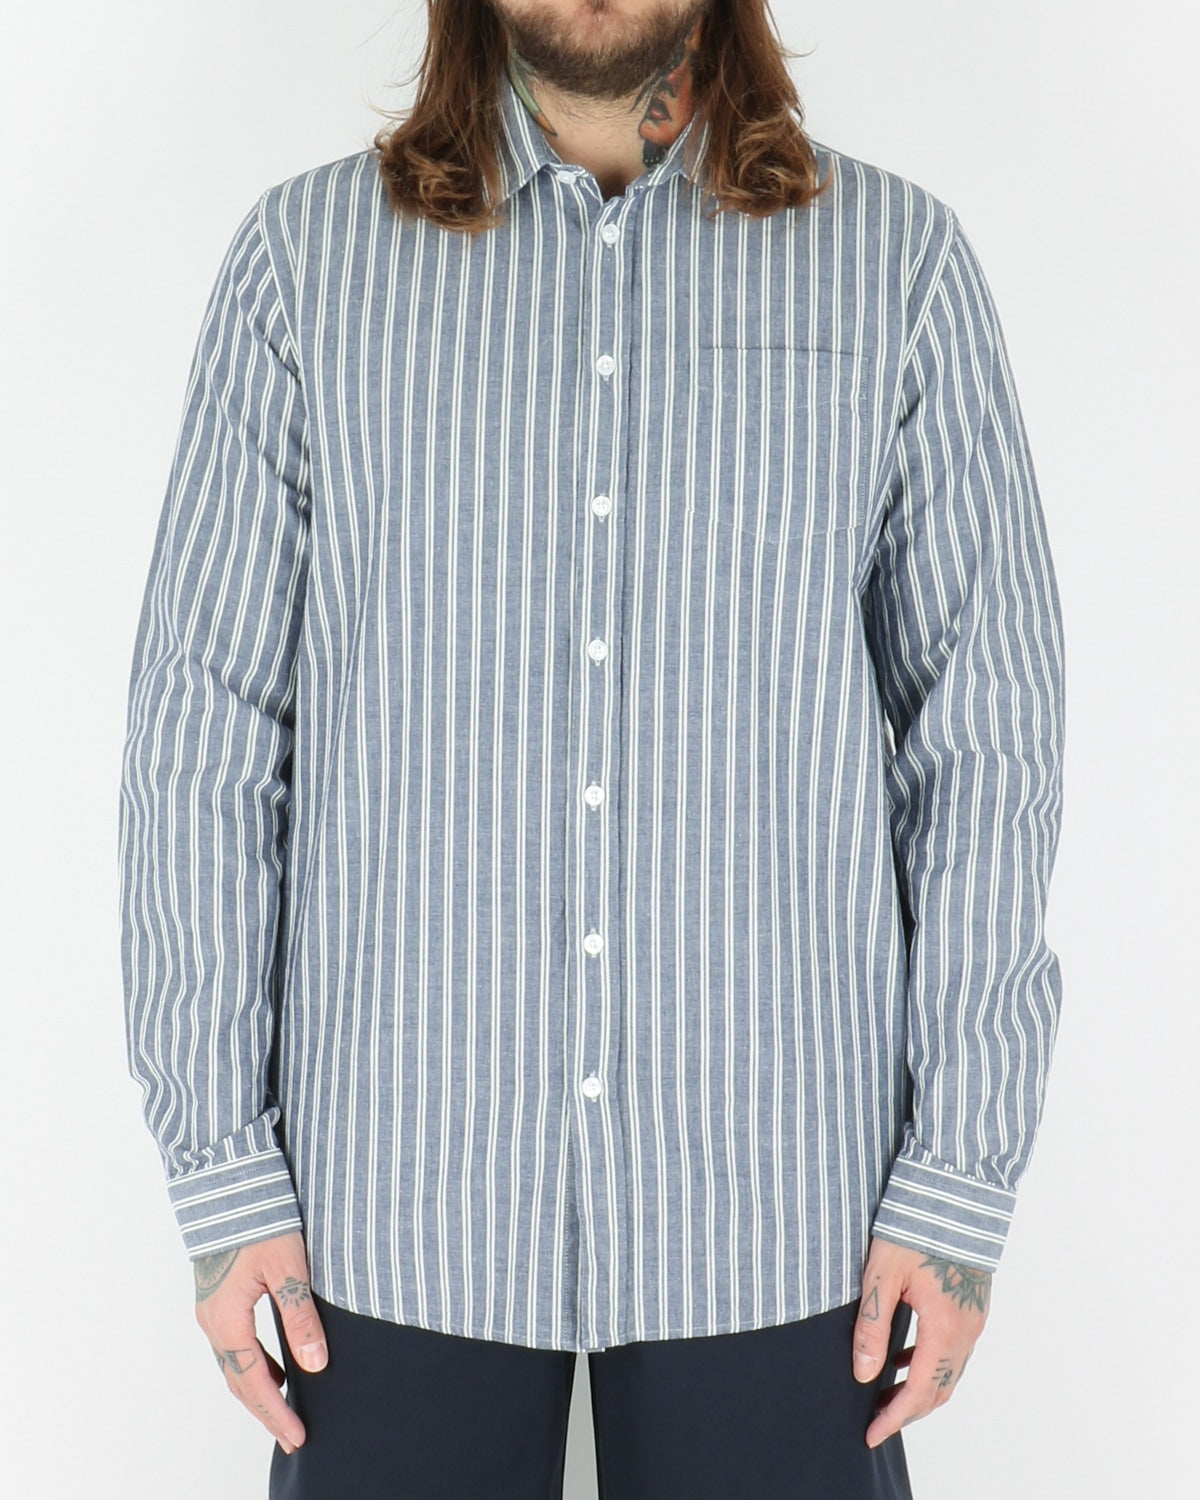 libertine libertine_lynch shirt_navy stripe_view_1_3